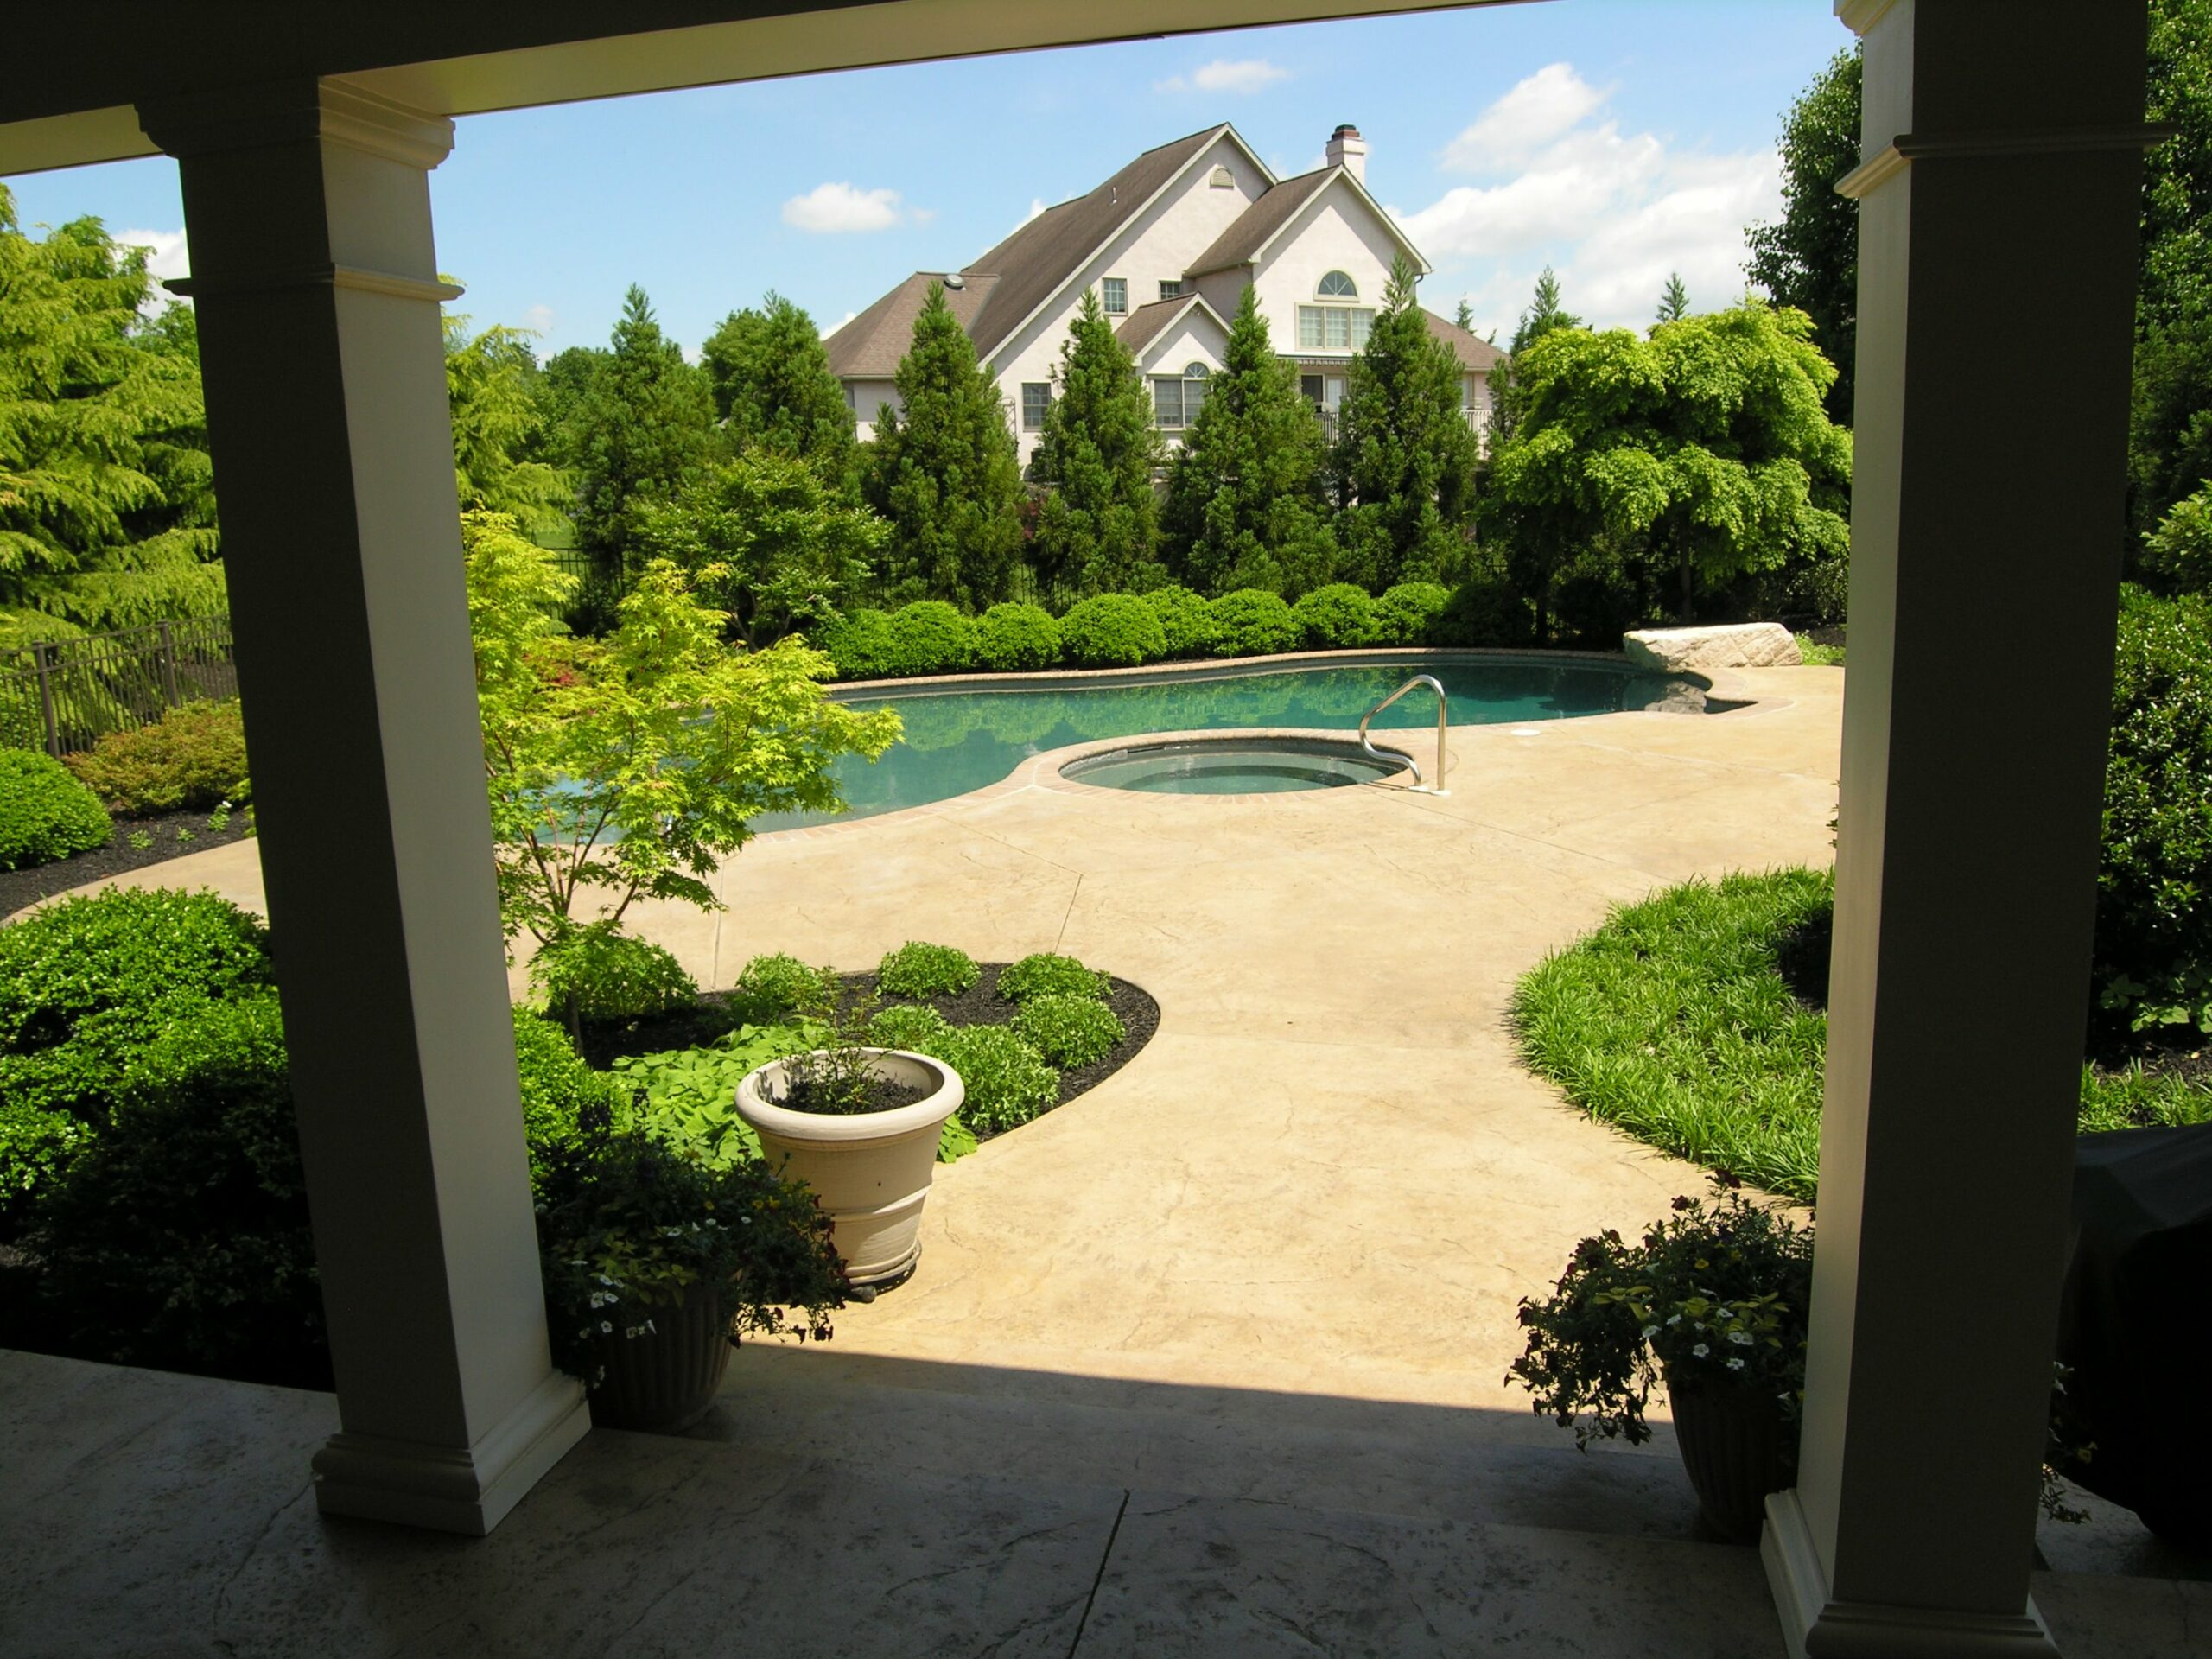 Deep porch frames view of private swimming pool oasis, Lancaster, PA